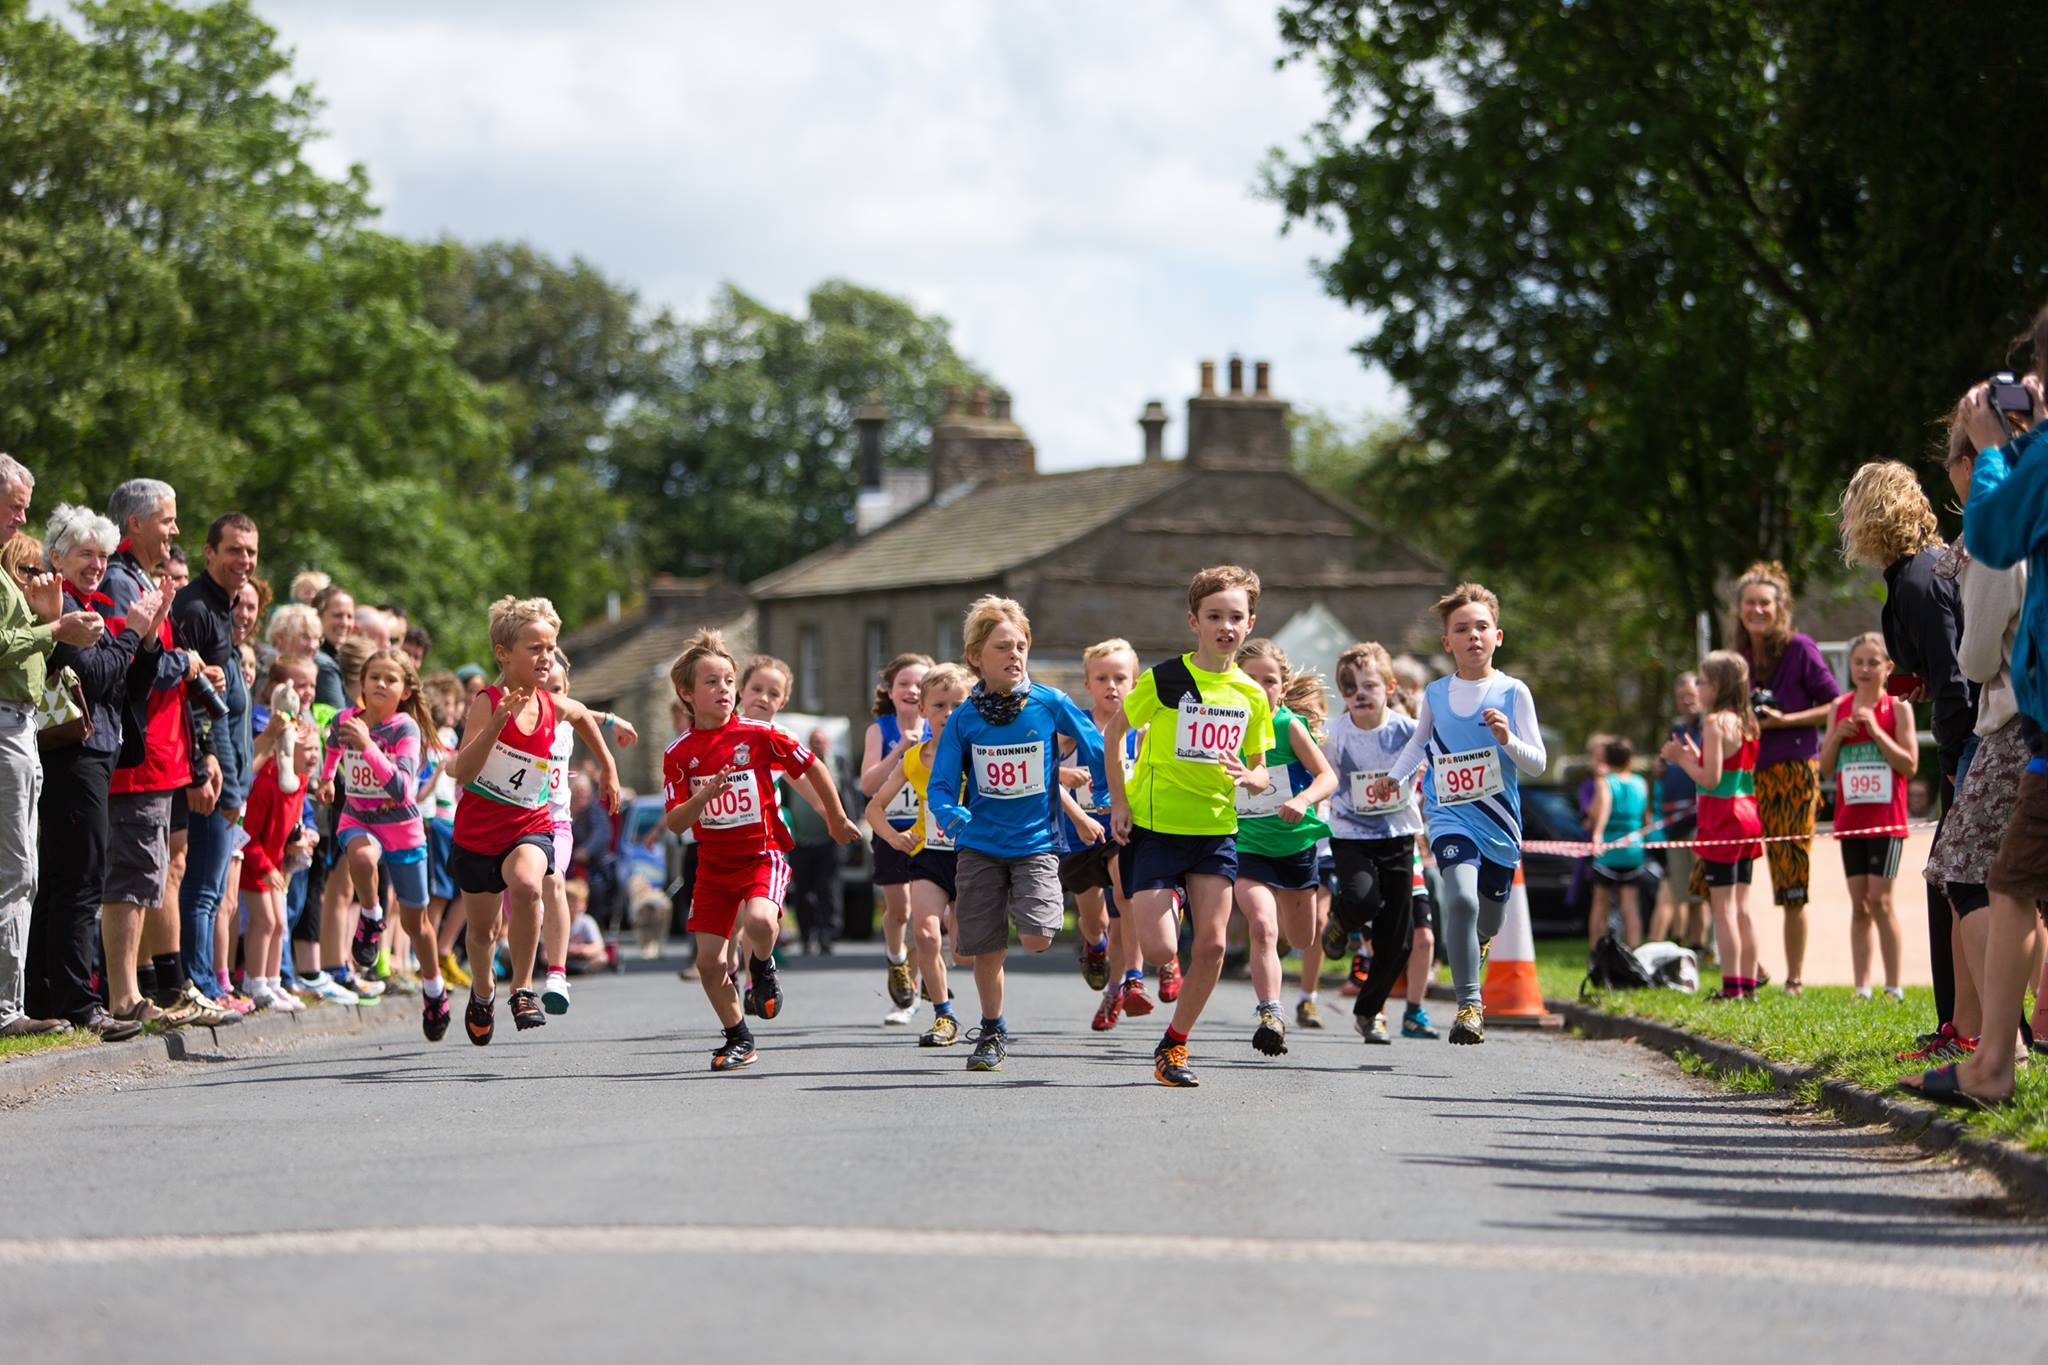 Littondale Fete has something for everyone